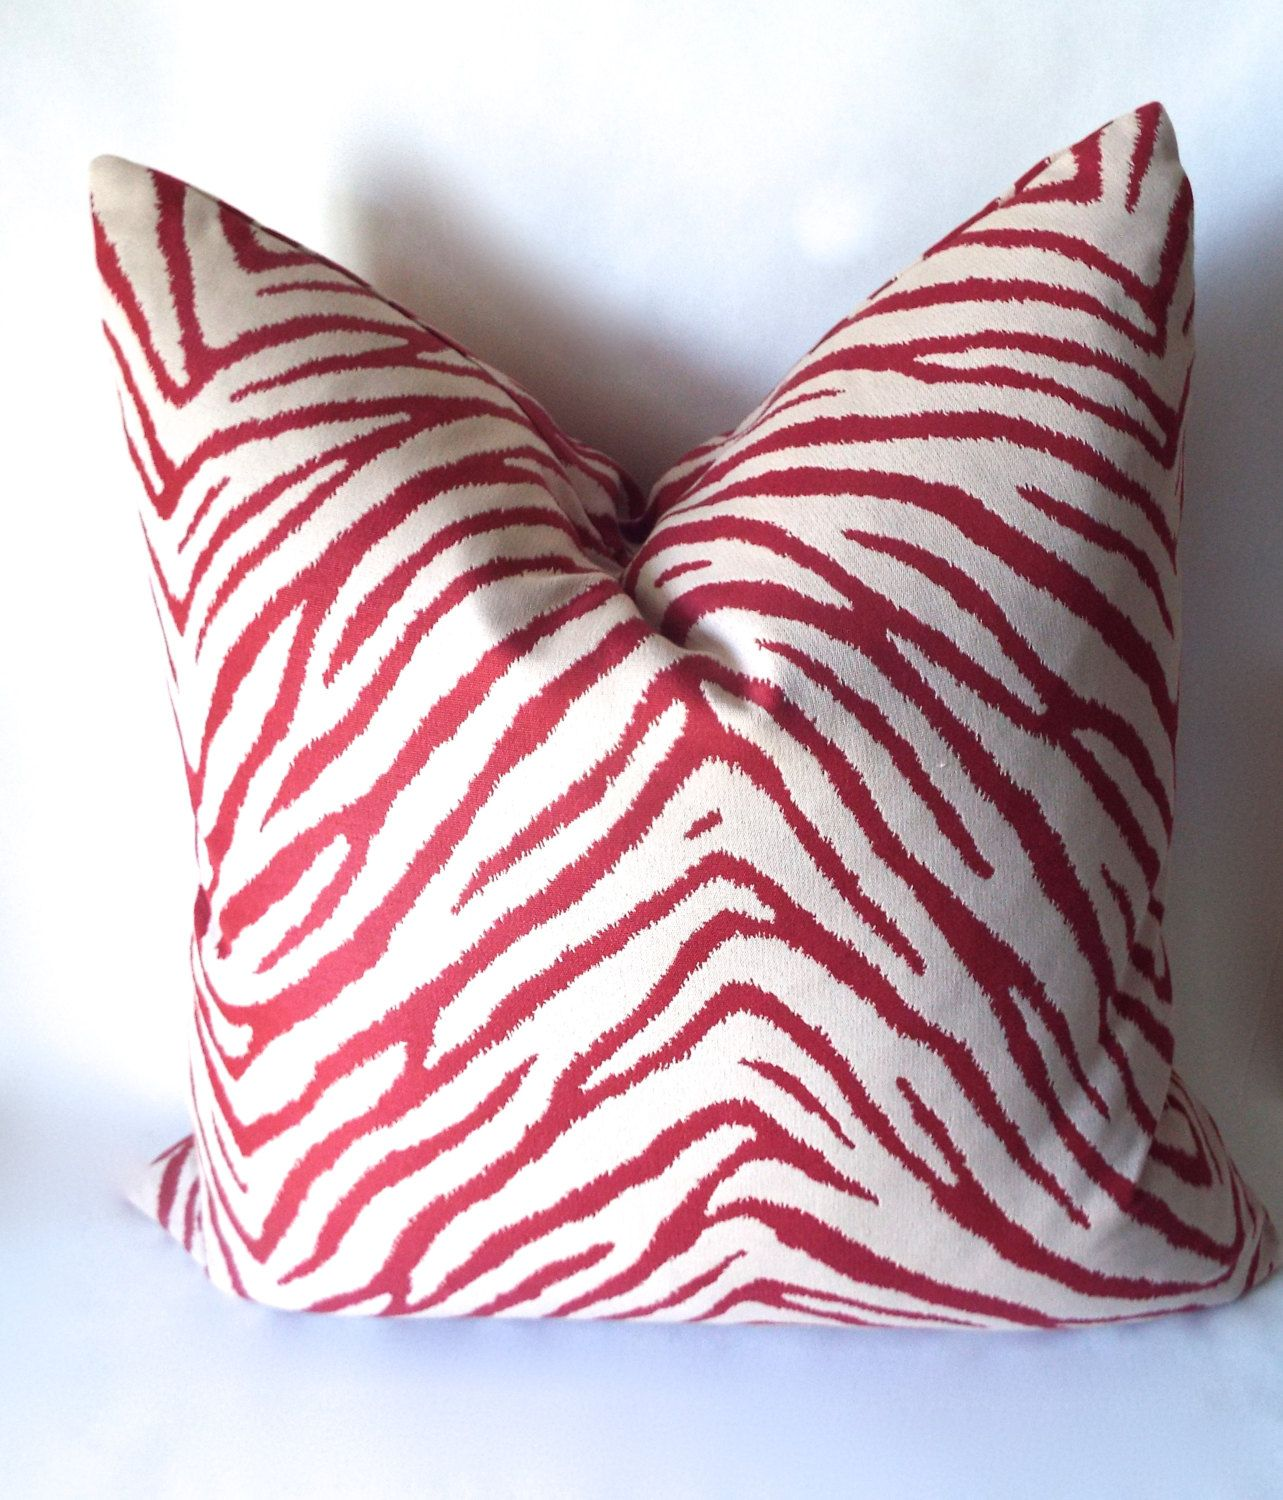 Red Zebra Pillow Zebra Print Throw Pillow Cover Animal Print